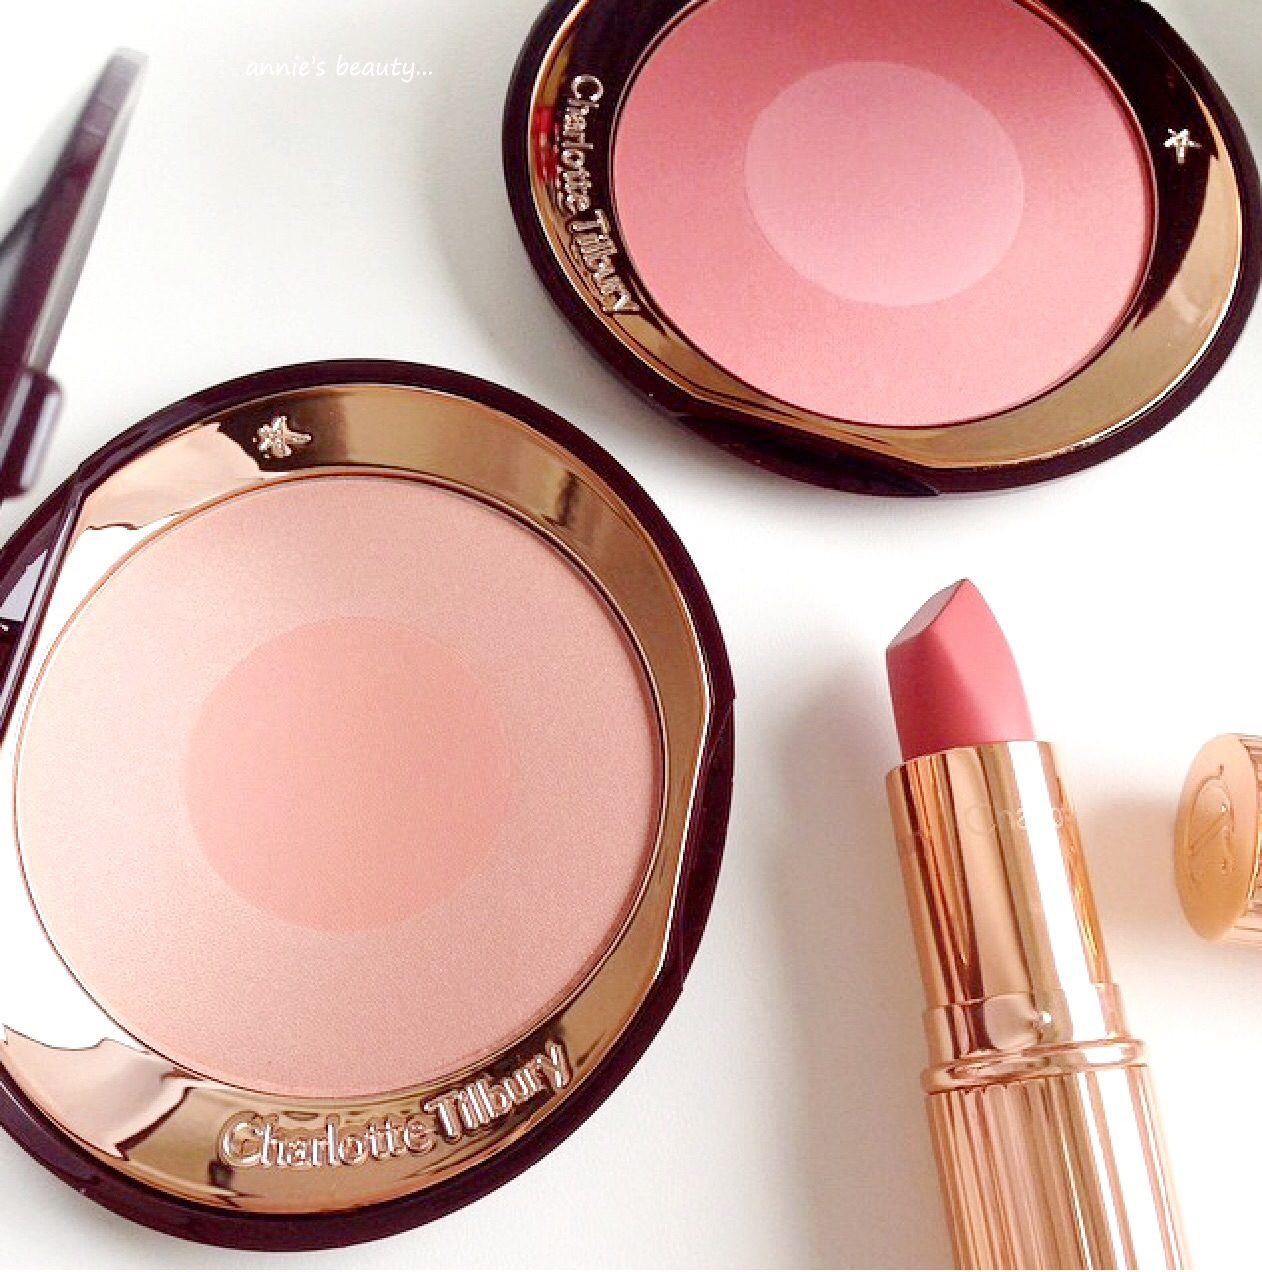 Timeless Beauty: Check Out Our May Pop-Up Shop Before It's Gone!